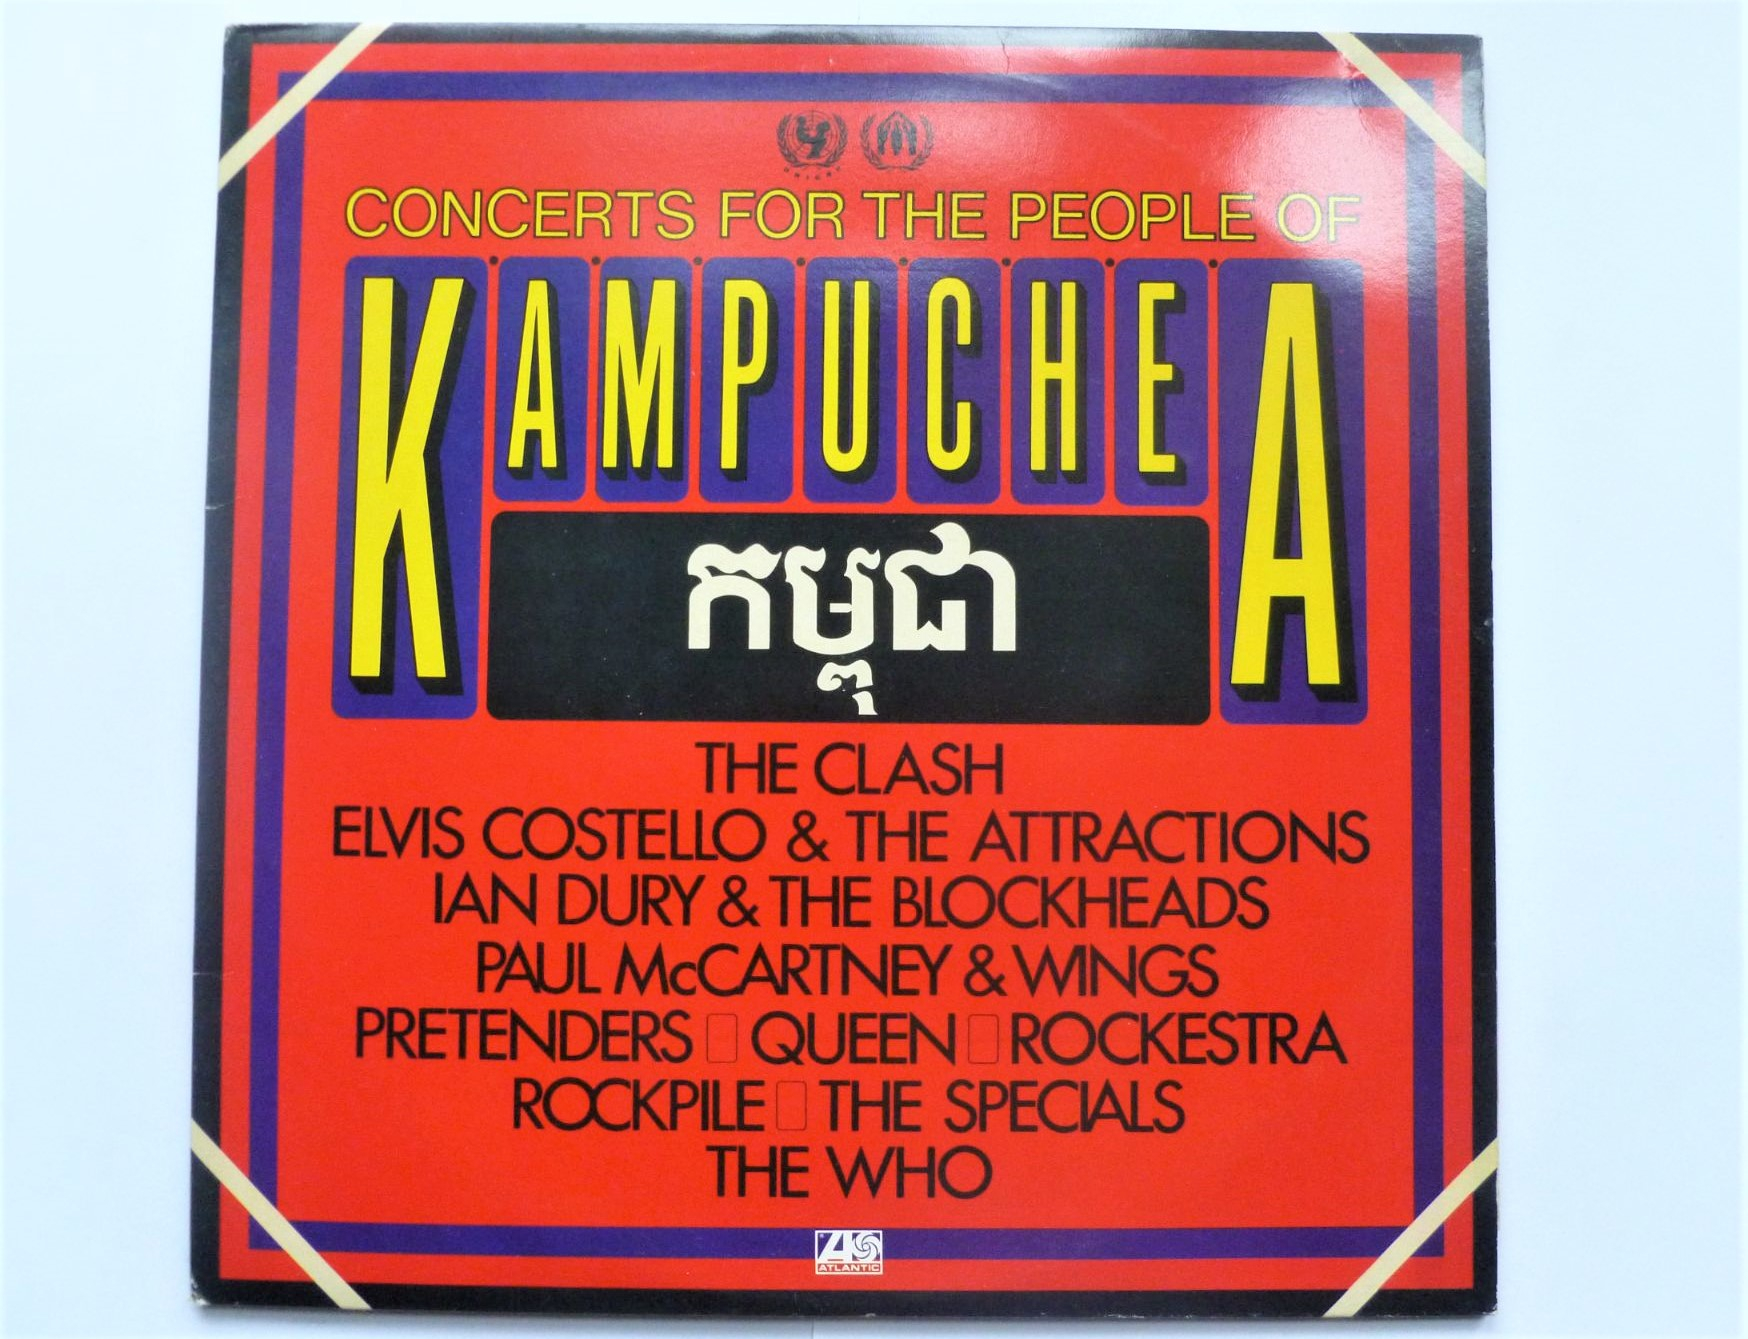 VARIOUS - Concerts For The People Of Kampuchea - LP x 2